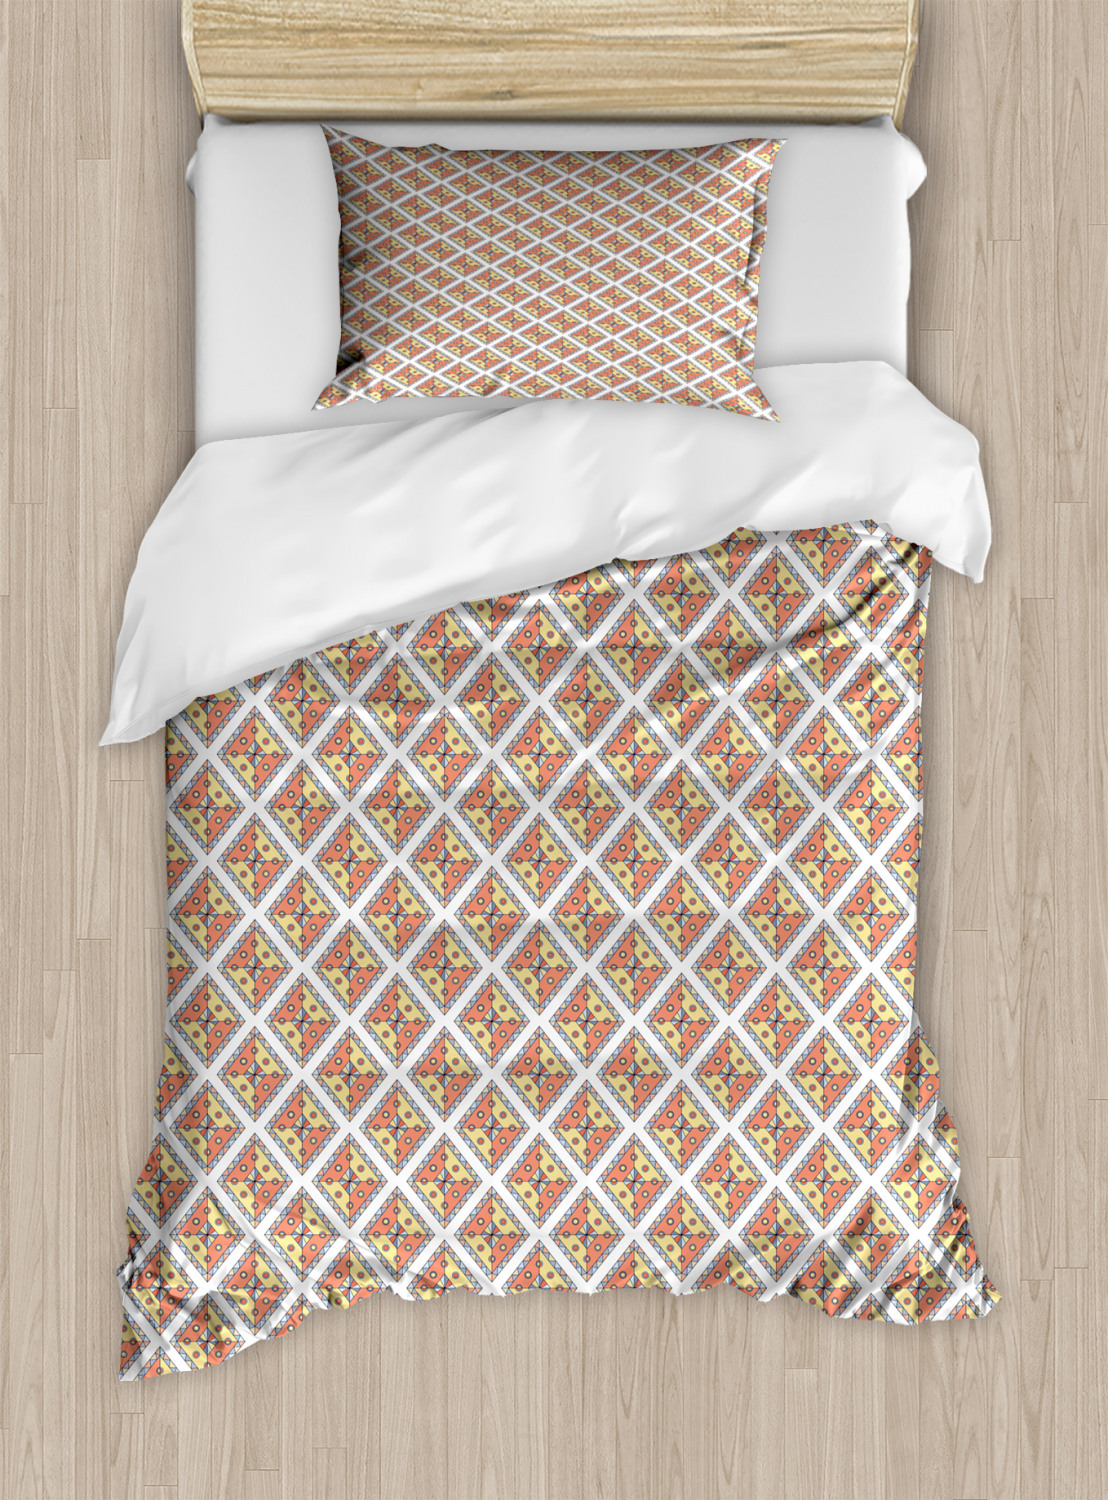 Timeless-Oriental-Duvet-Cover-Set-Twin-Queen-King-Sizes-with-Pillow-Shams thumbnail 46